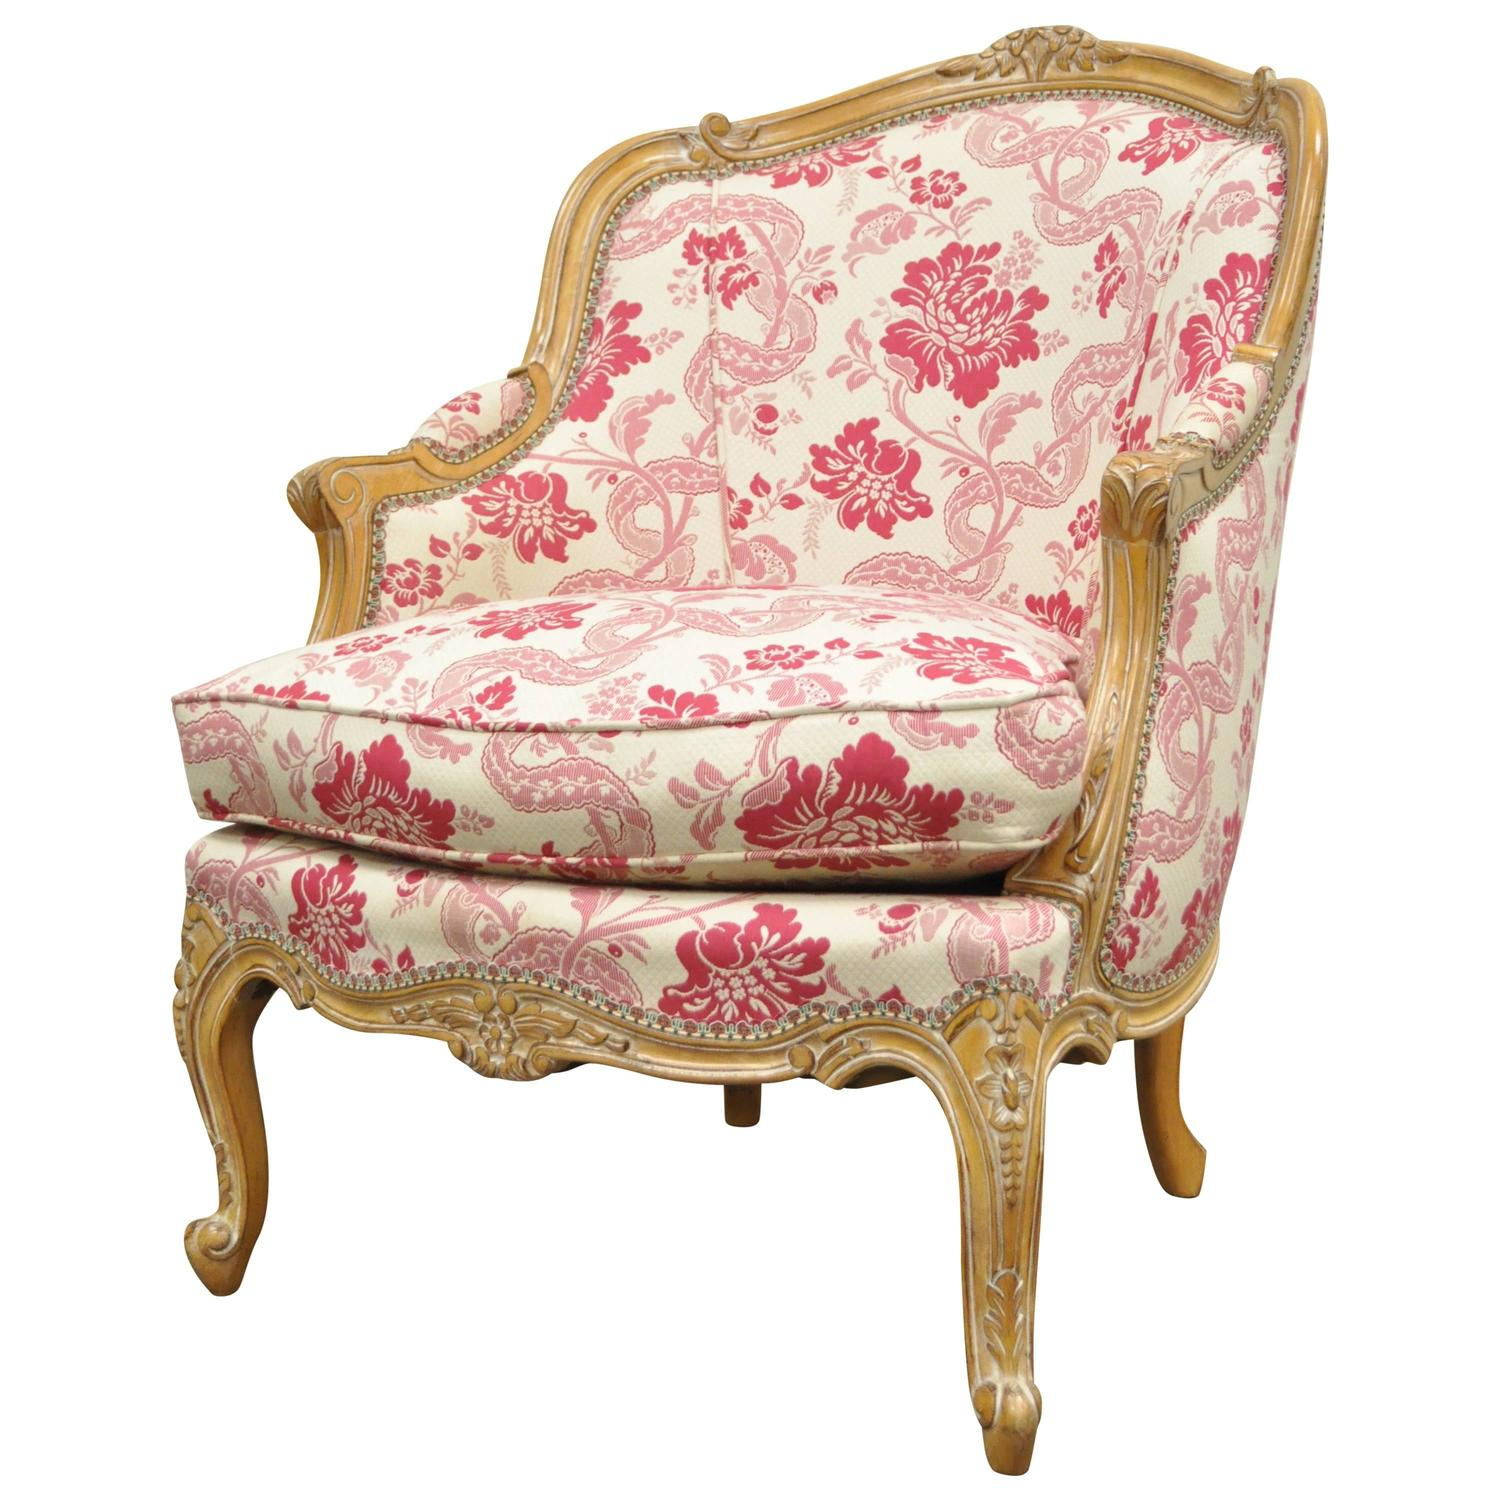 pink arm chair reclining camping with footrest 20th century finely carved french louis xv style bergere lounge armchair for sale at 1stdibs